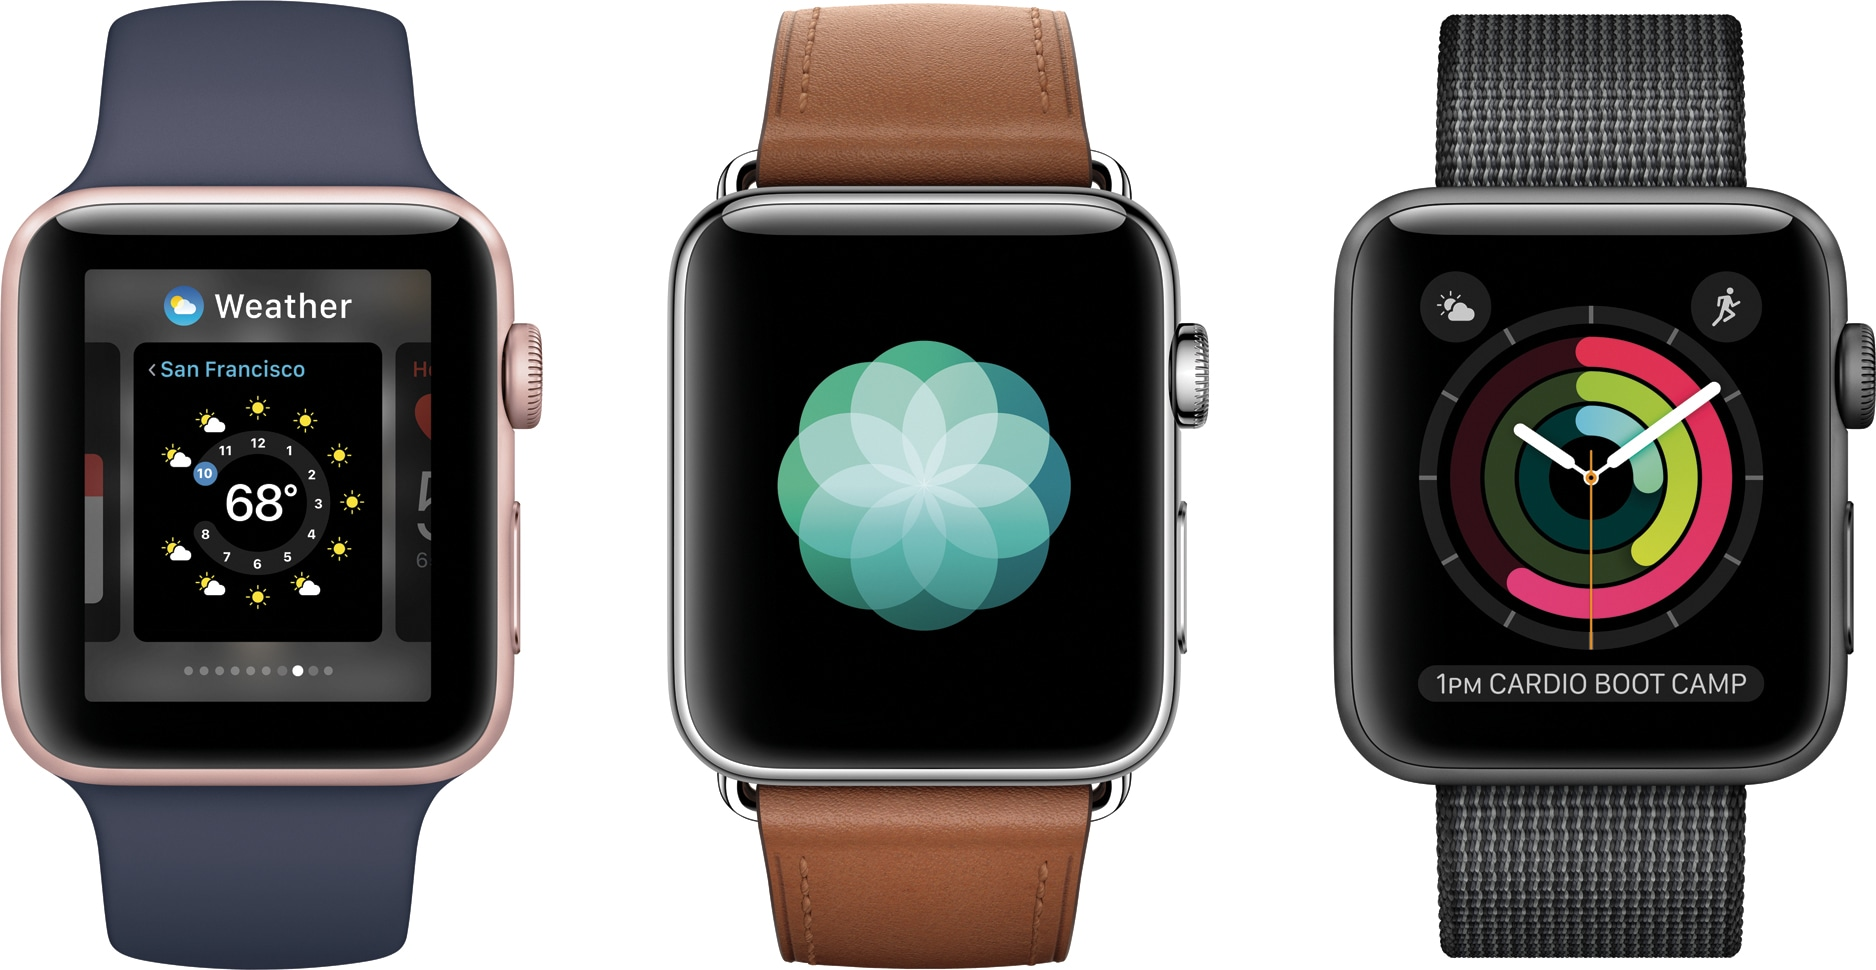 Modelos variados do Apple Watch Series 2 de frente